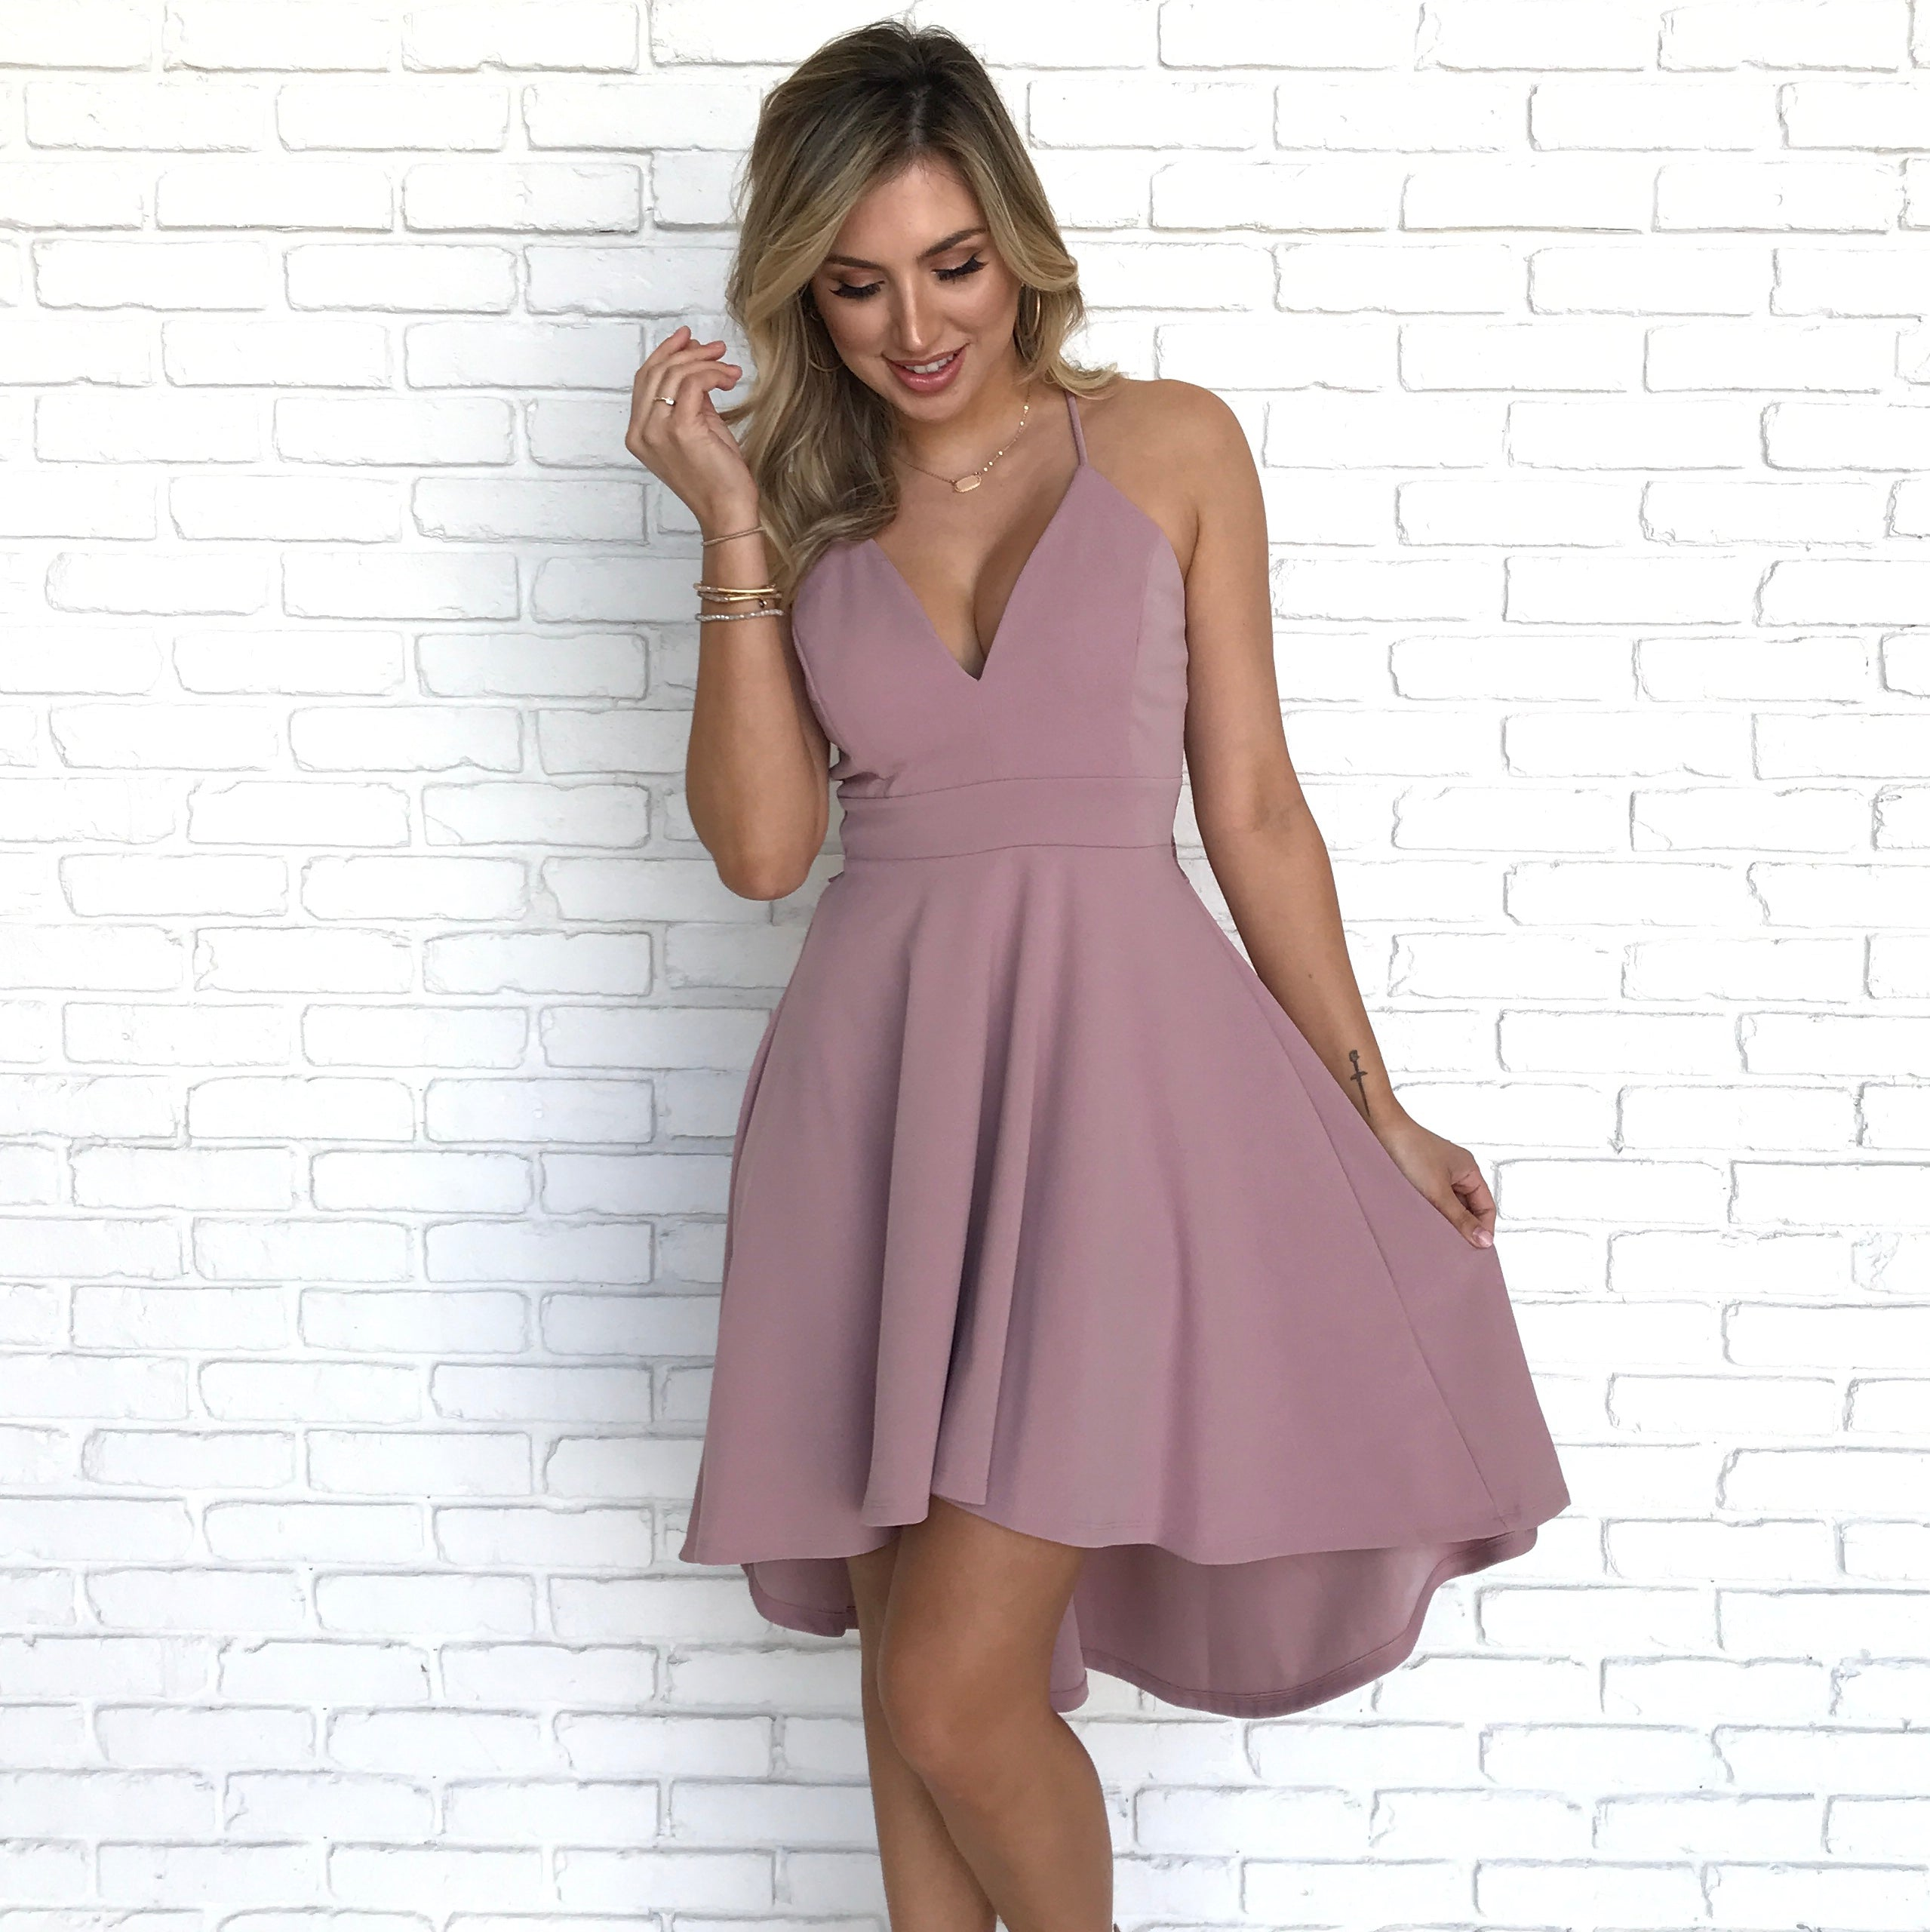 c1451e74db Deep In Love Hi Low Dress in Mauve - Dainty Hooligan Boutique